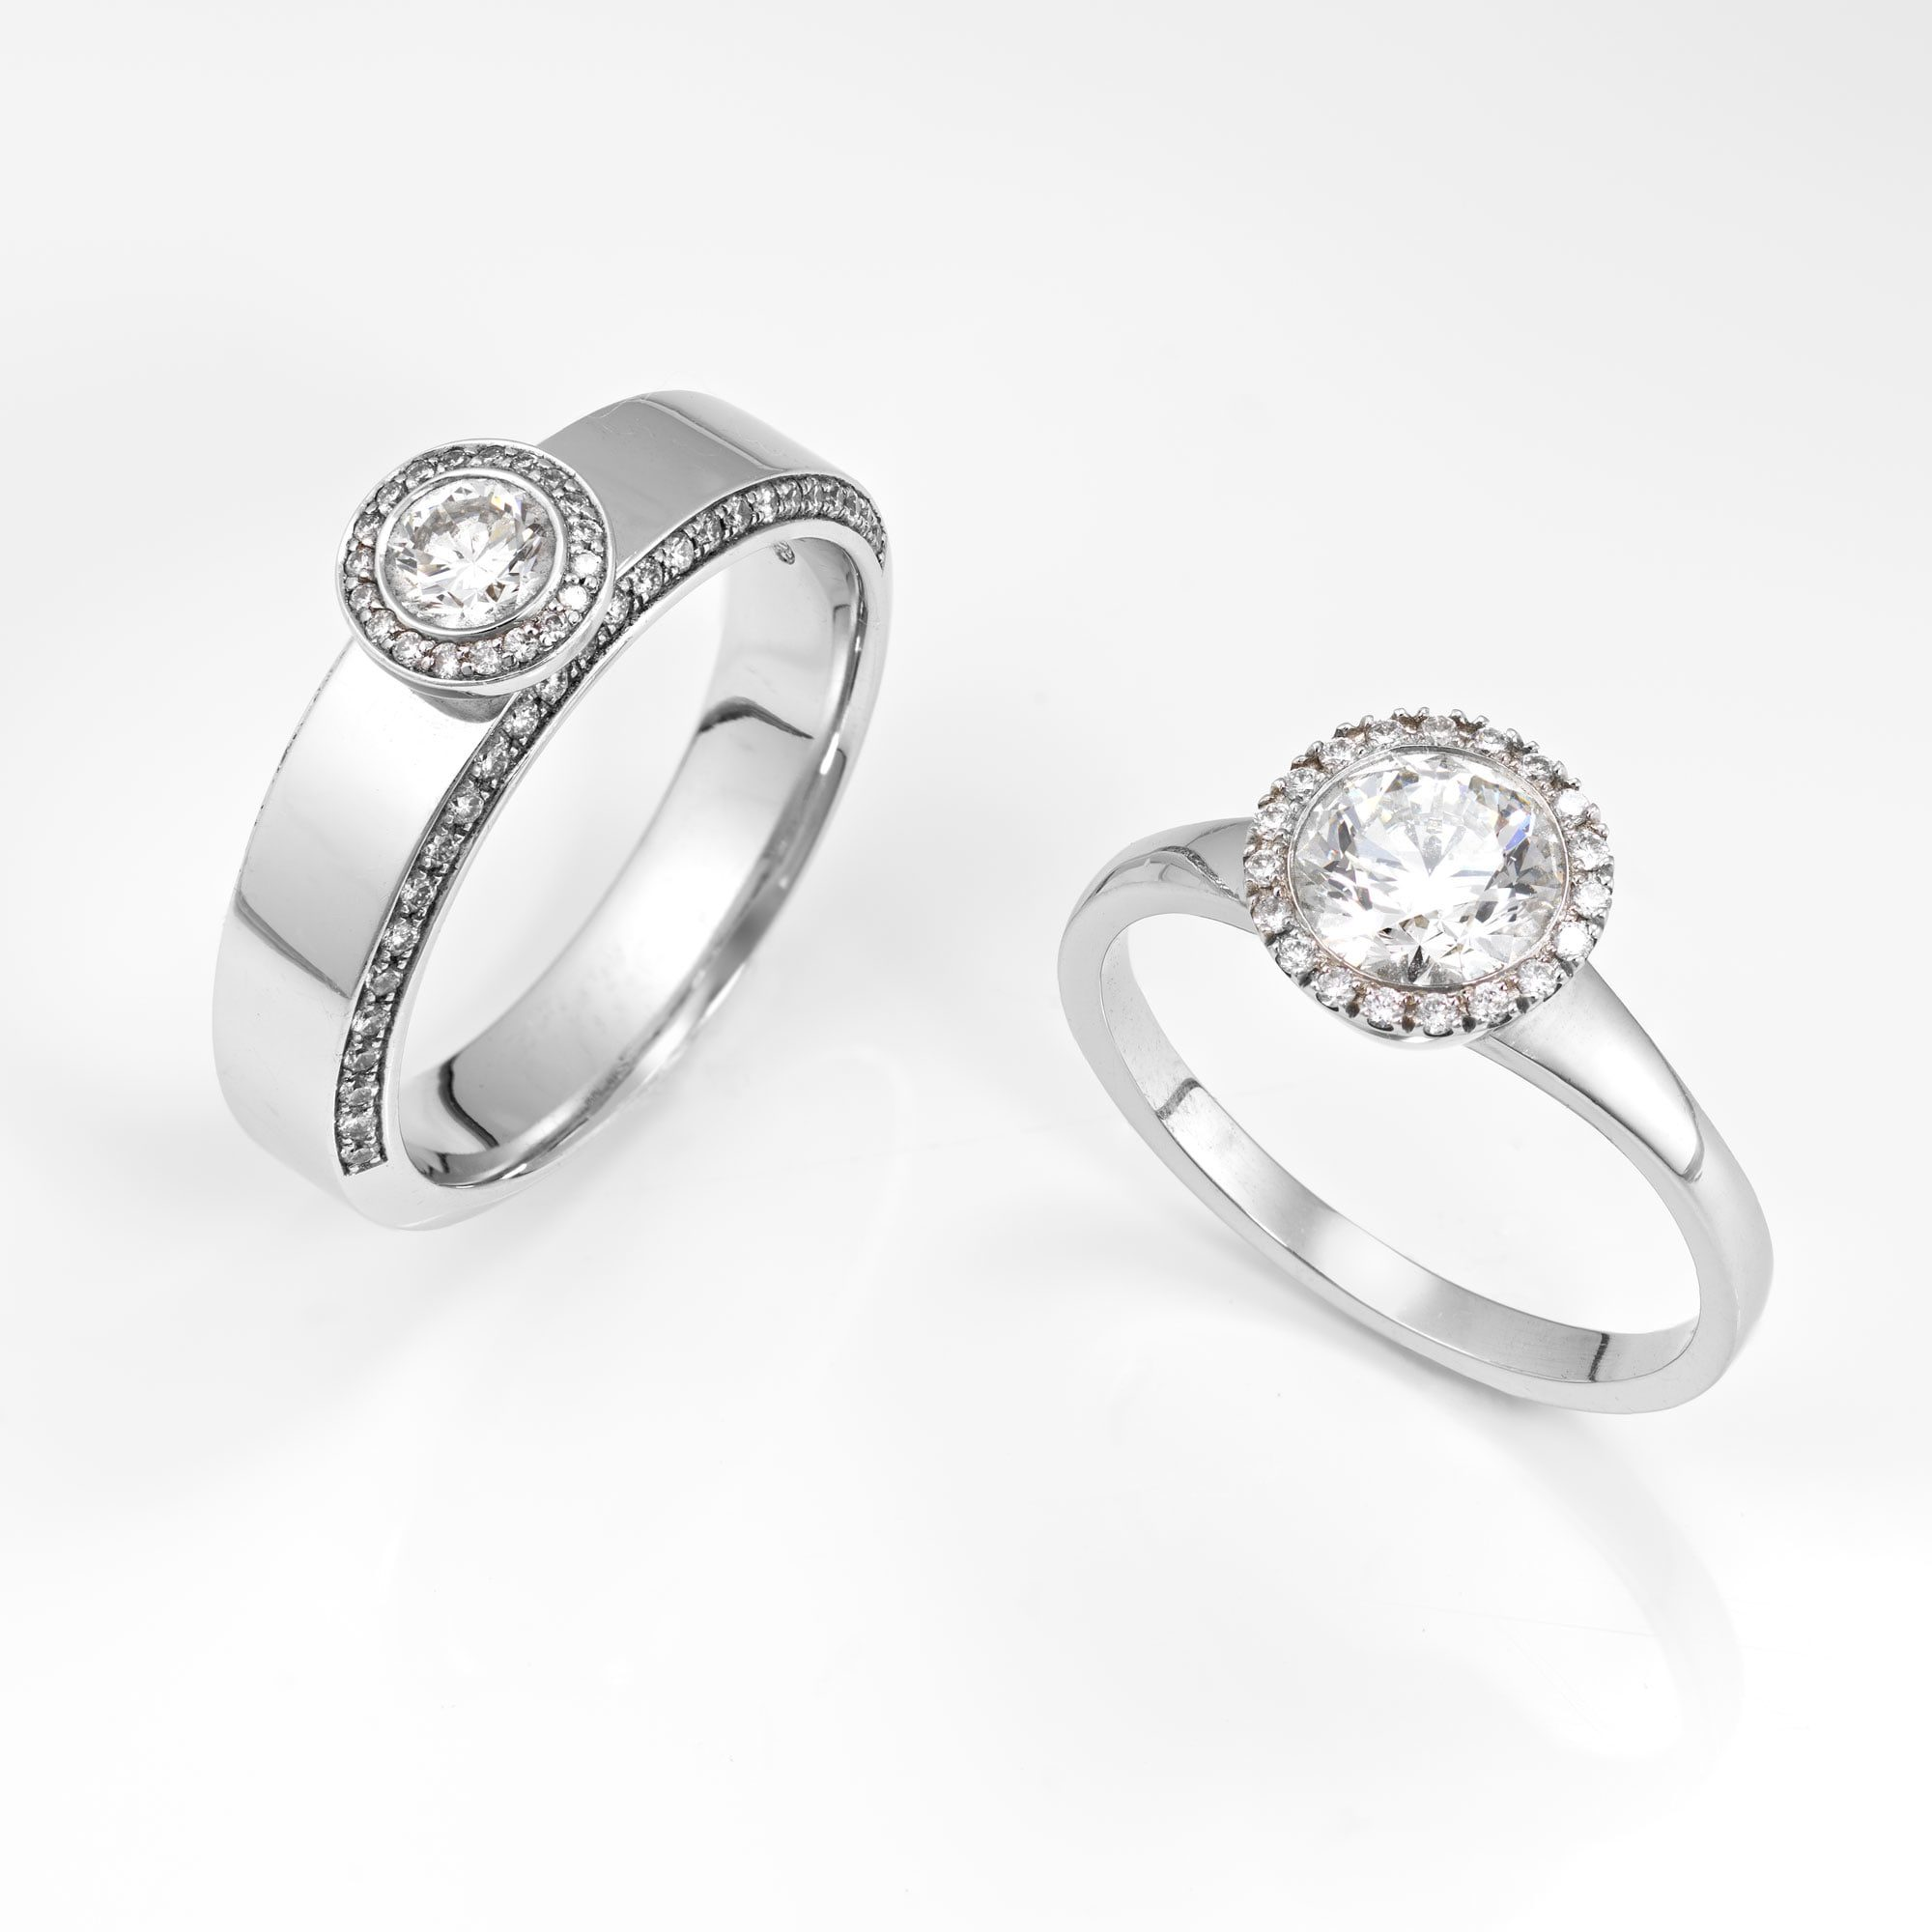 Diamond ring photography - The finished result